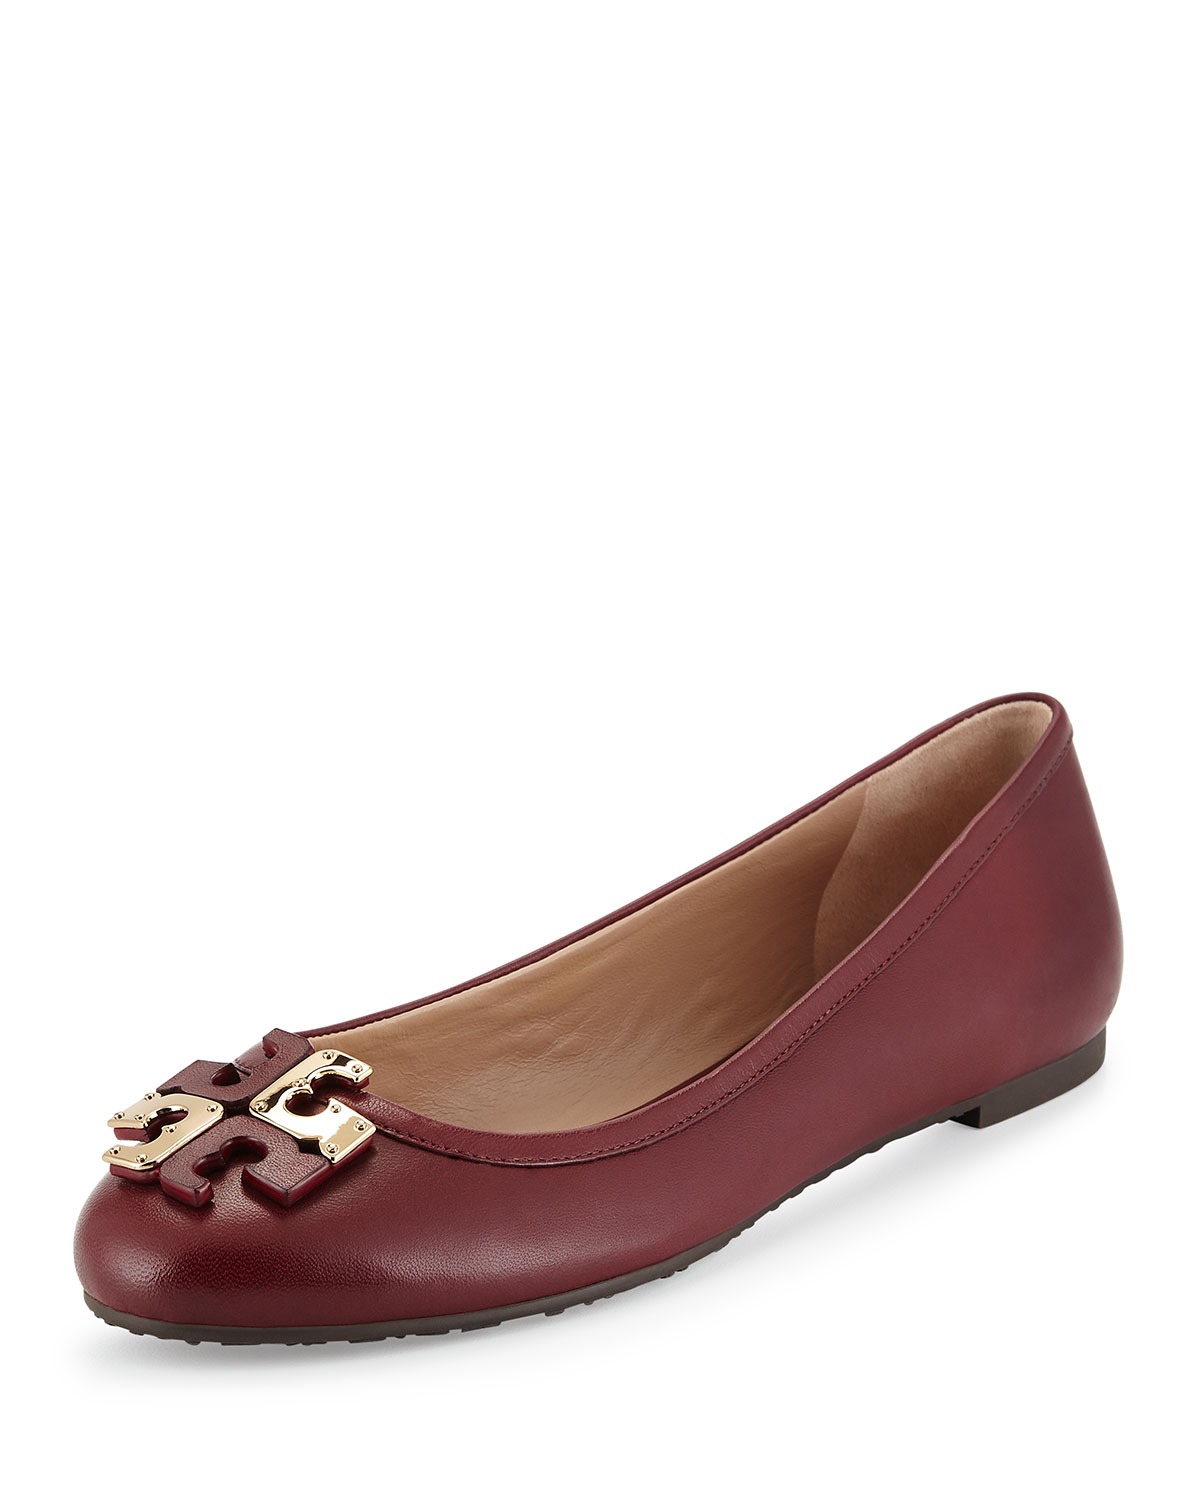 0d598e62ac97c4 Tory Burch Lowell Leather Ballet Flat